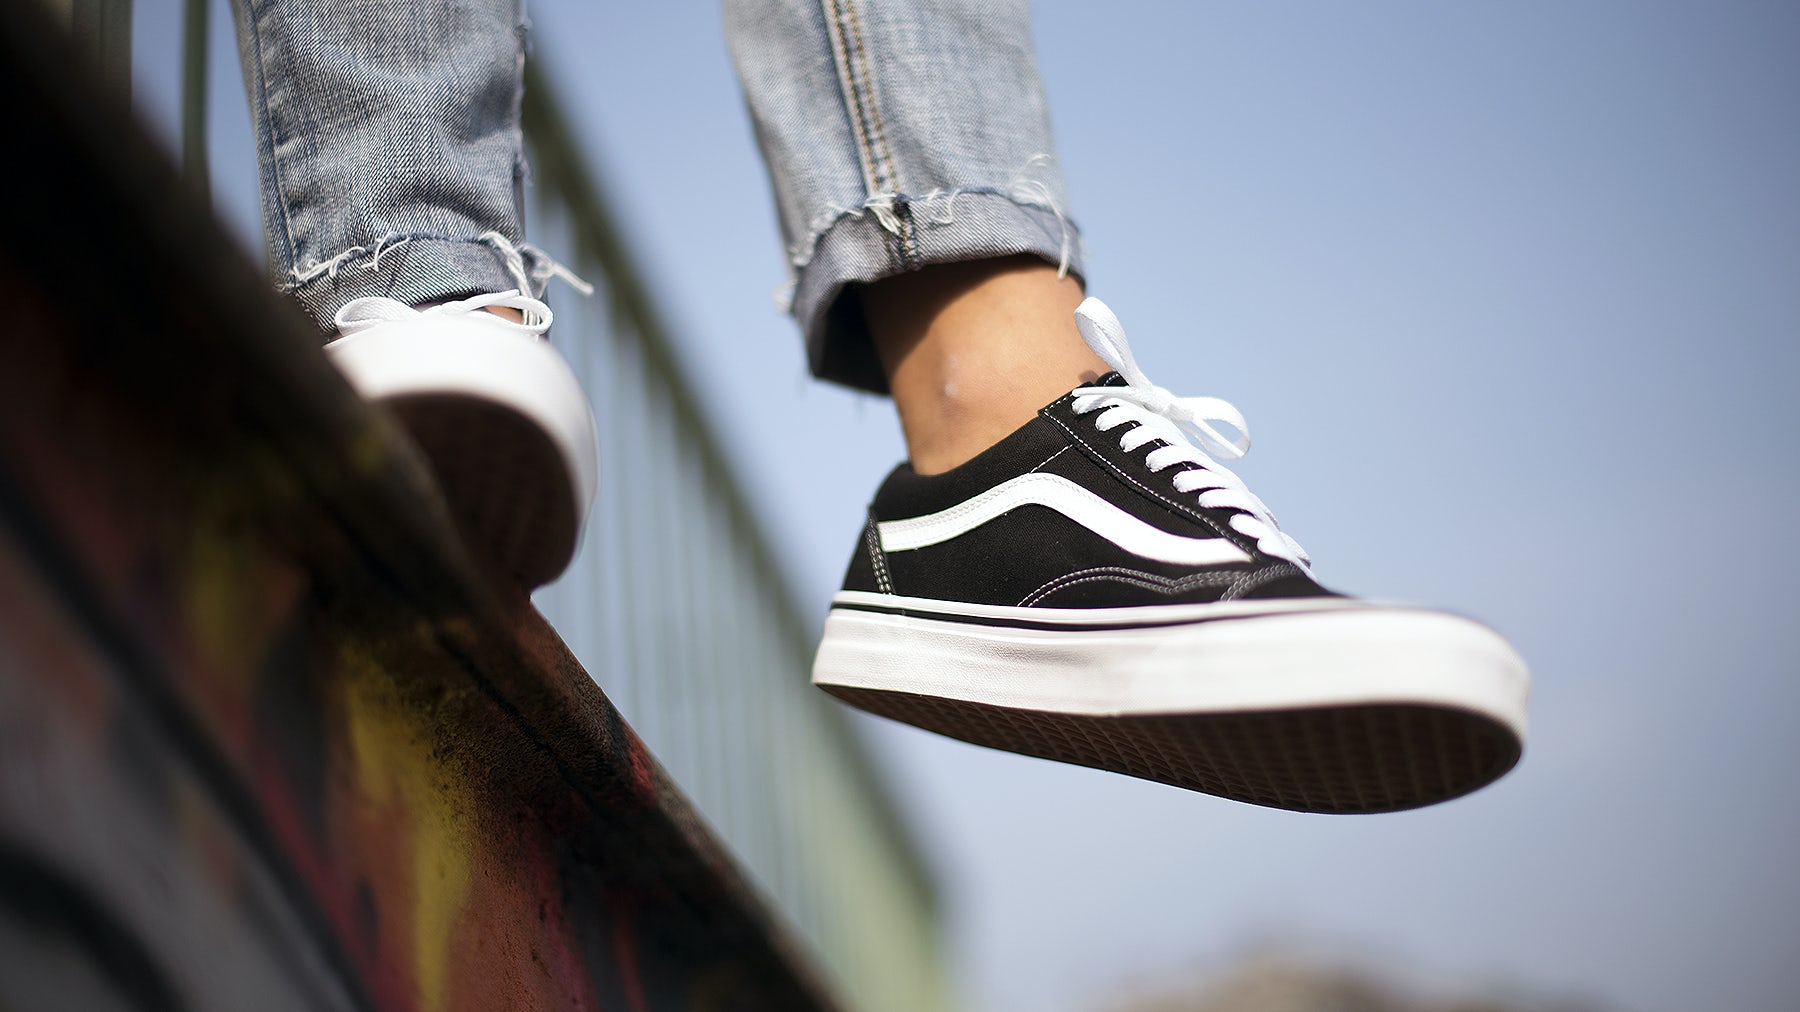 Article cover of Vans Boosts VF Corp Quarterly Results